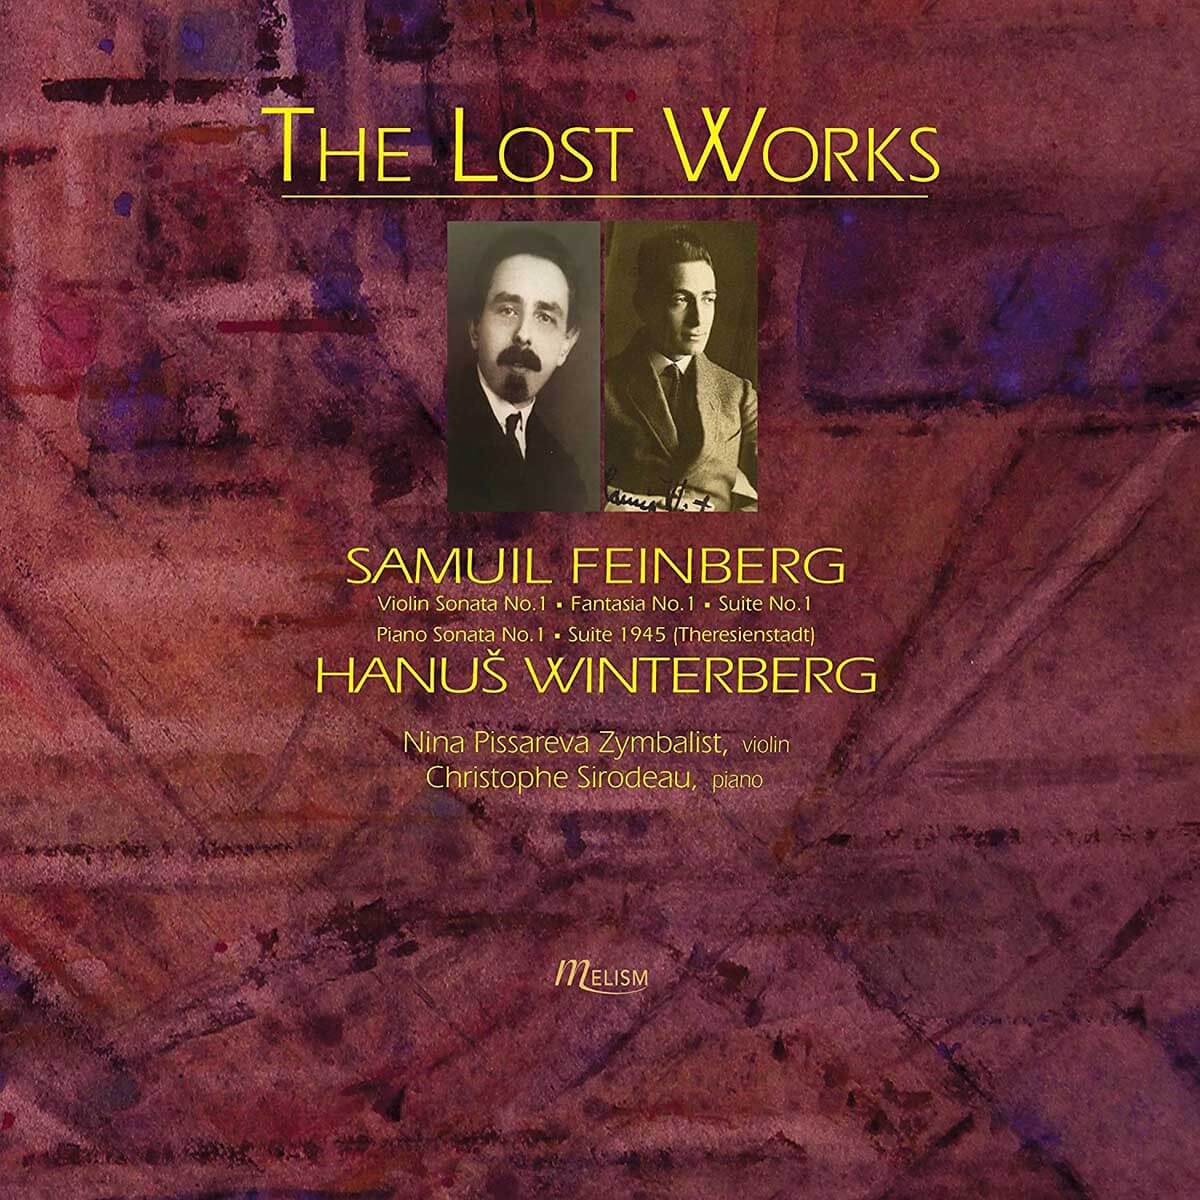 The Lost Works - Feinberg and Winterberg